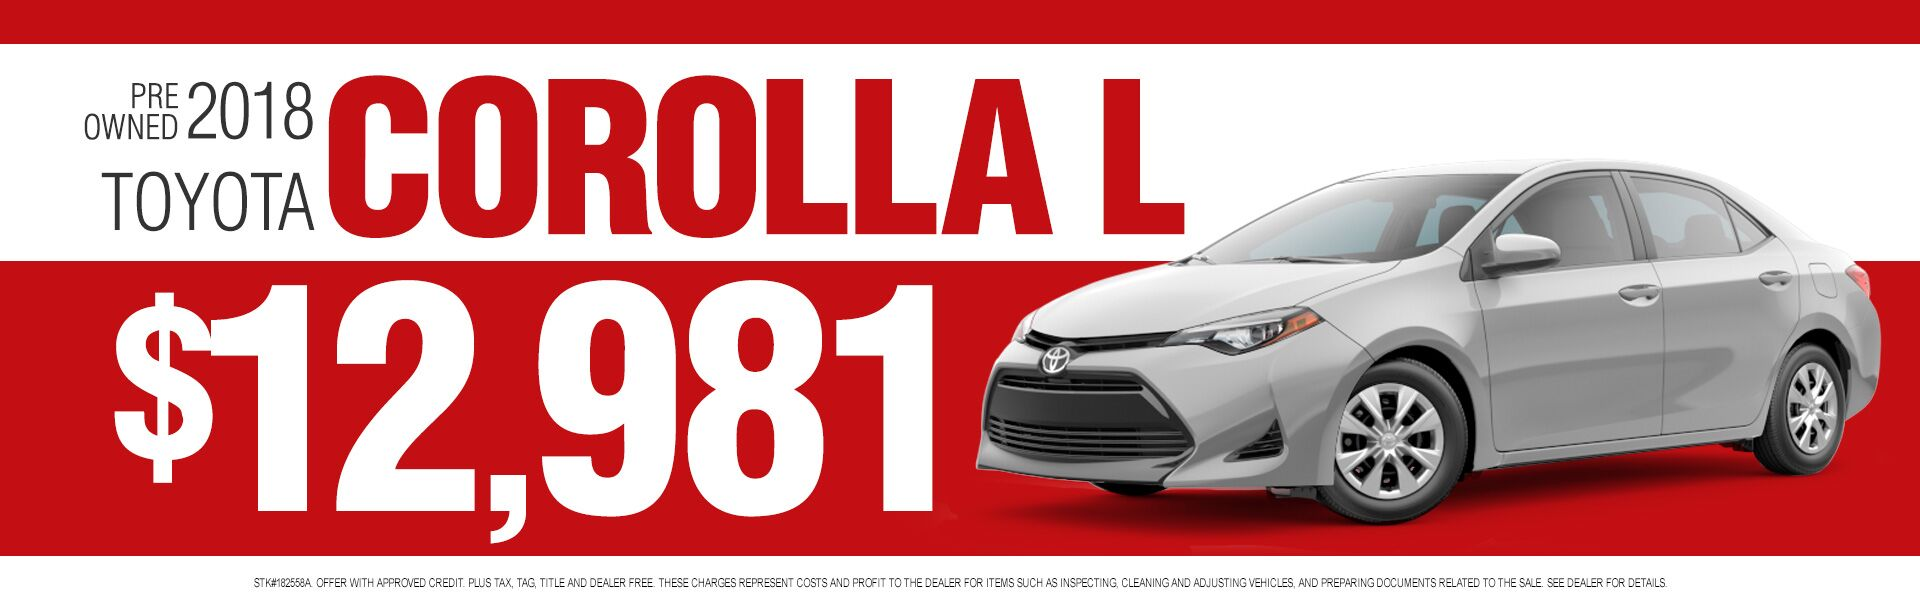 hight resolution of pre owned corolla